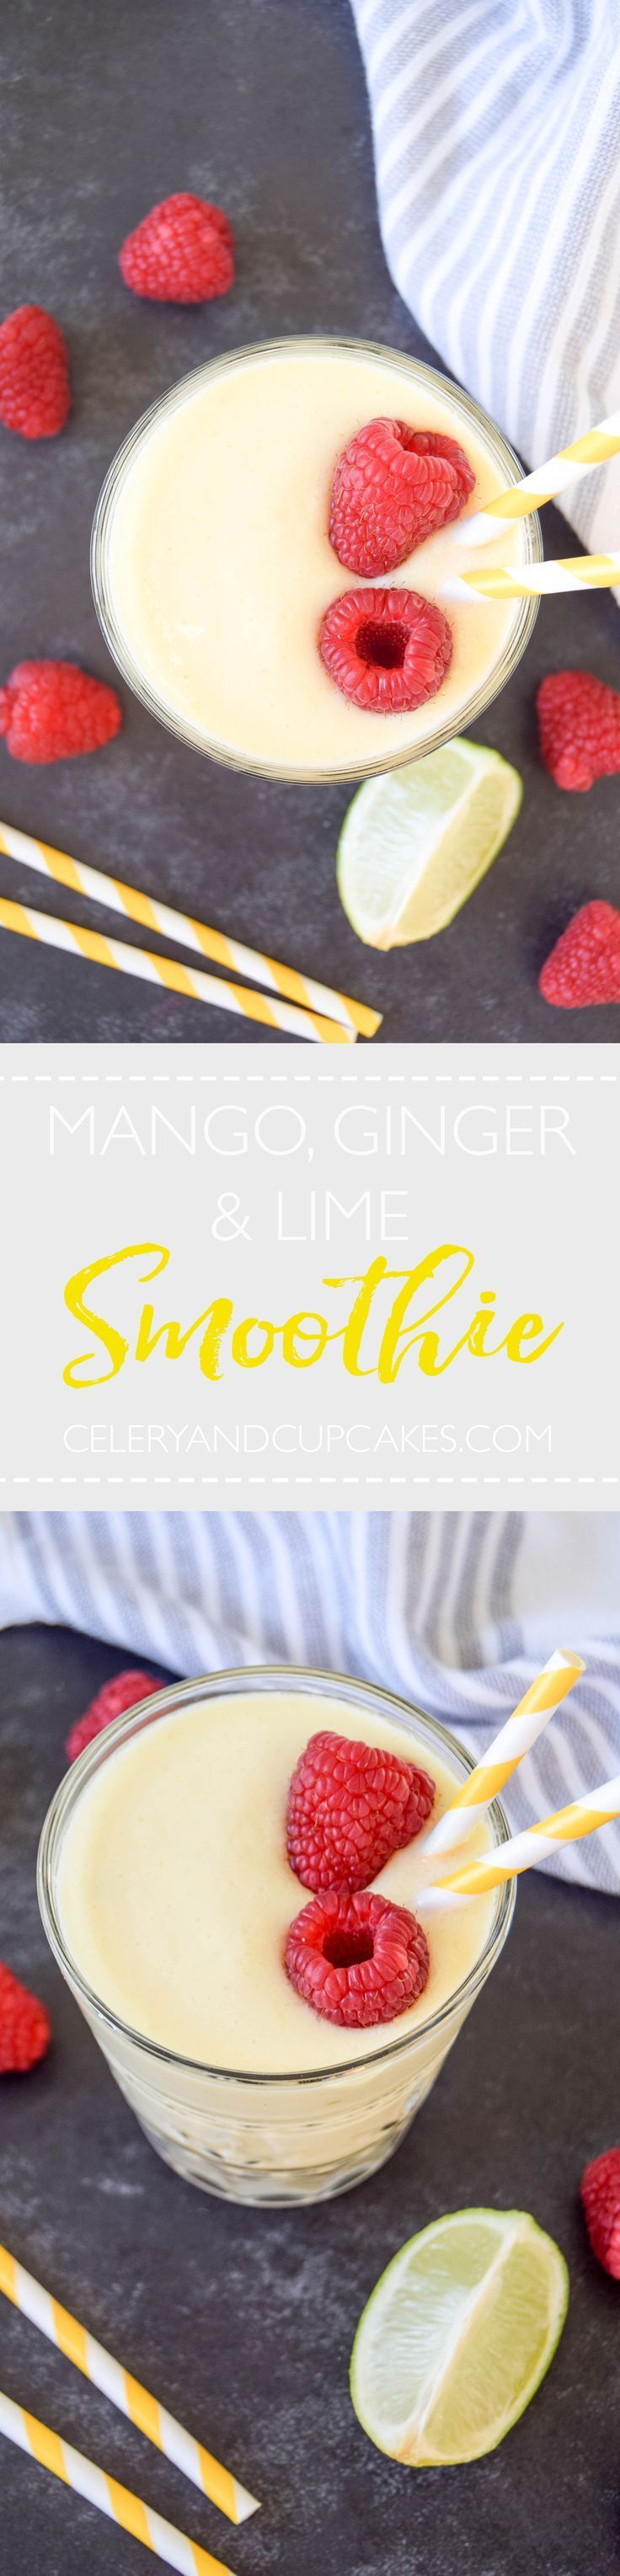 A sunshine smoothie that will brighten up any dull day and make you feel fantastic!